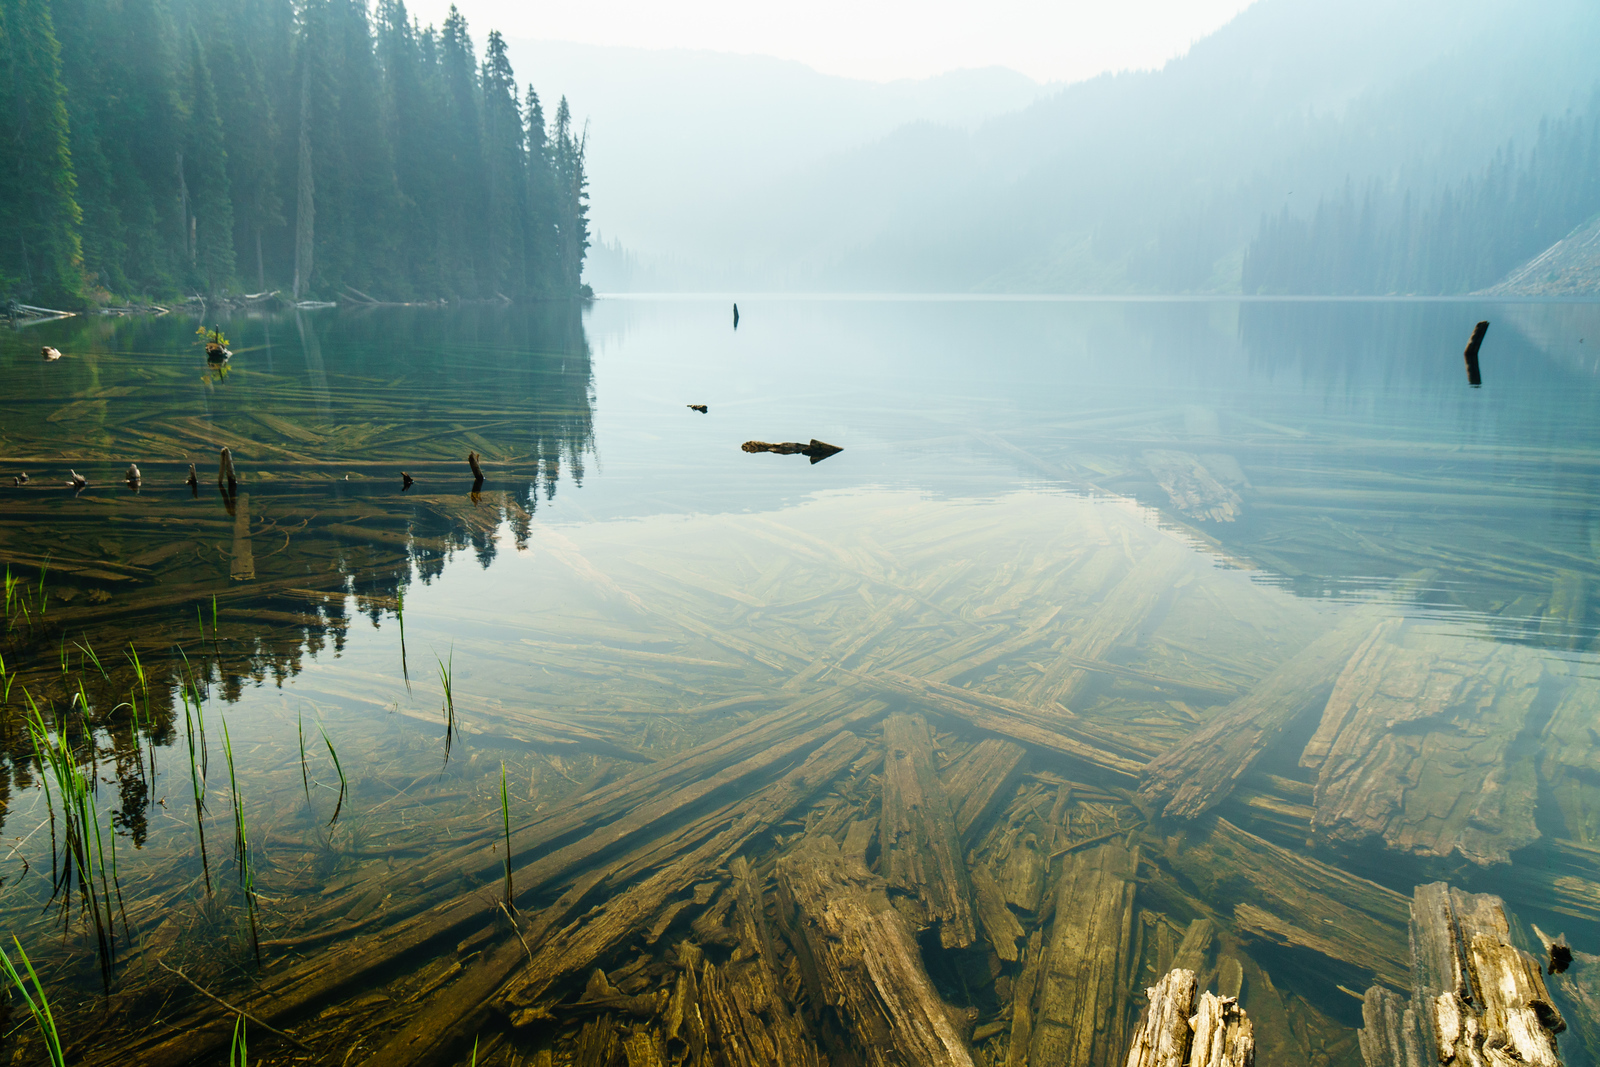 Smoky skies and long forgotten logs reflected in Lizzie Lake near Pemberton, British Columbia.